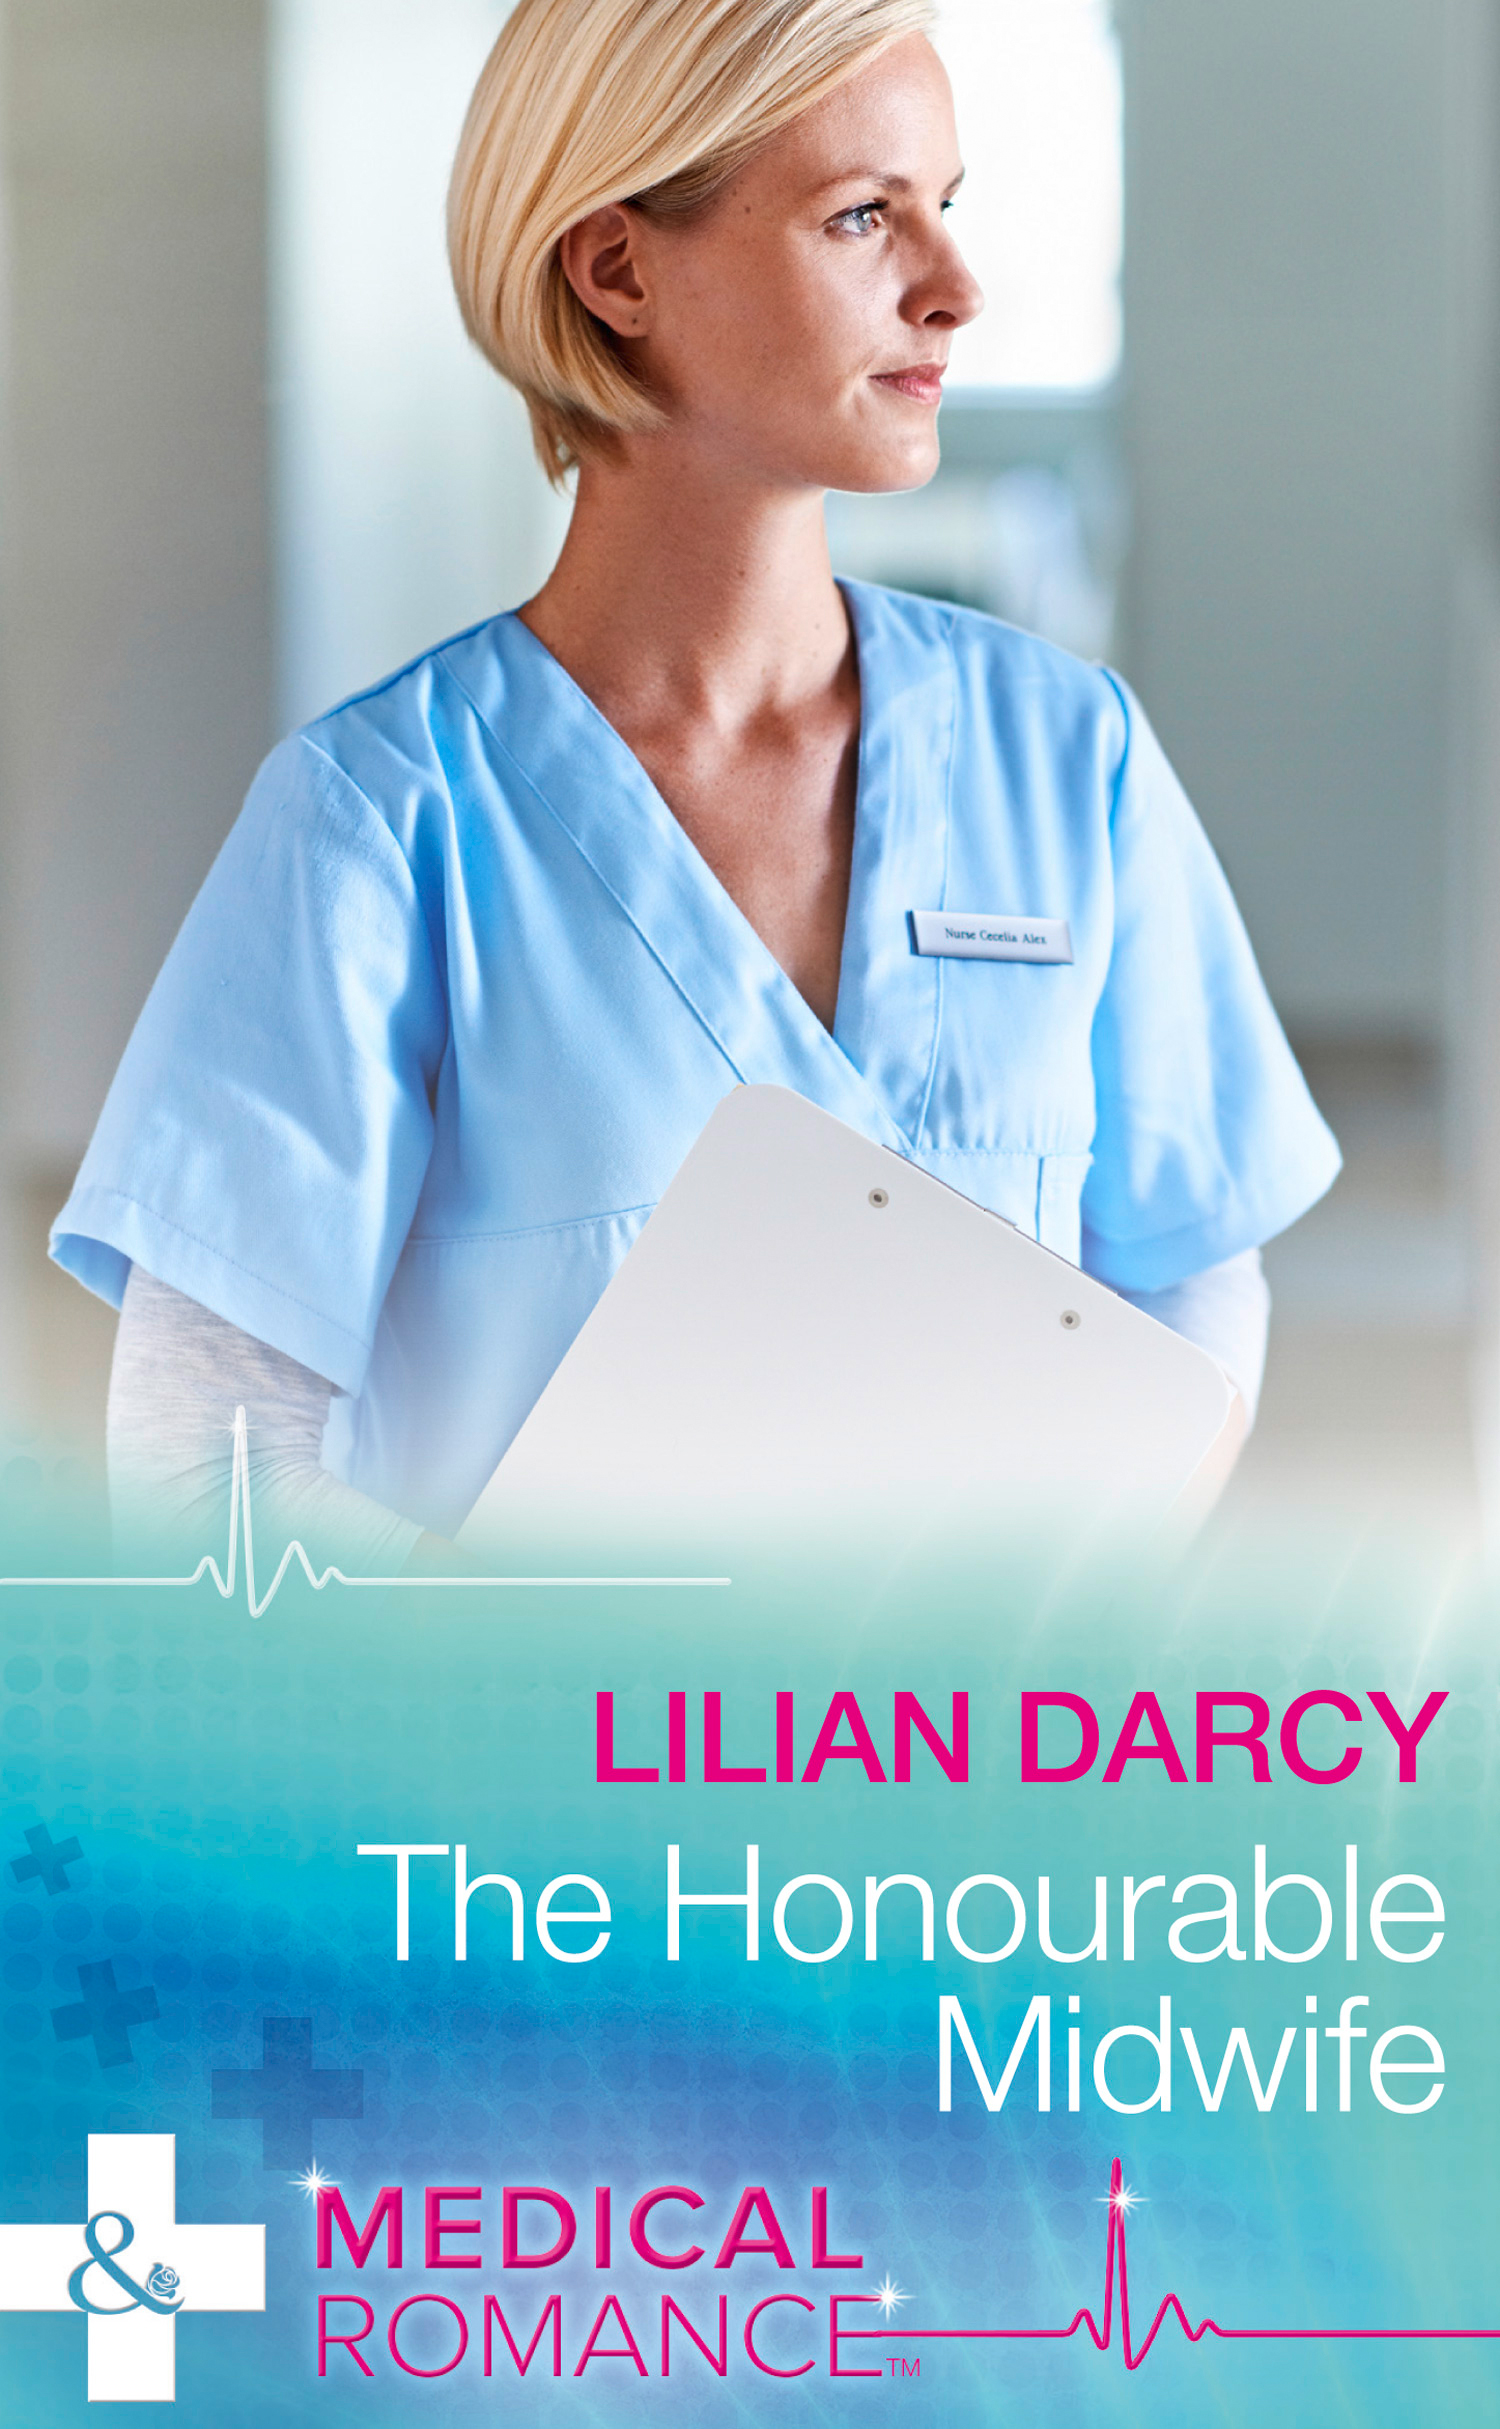 The Honourable Midwife